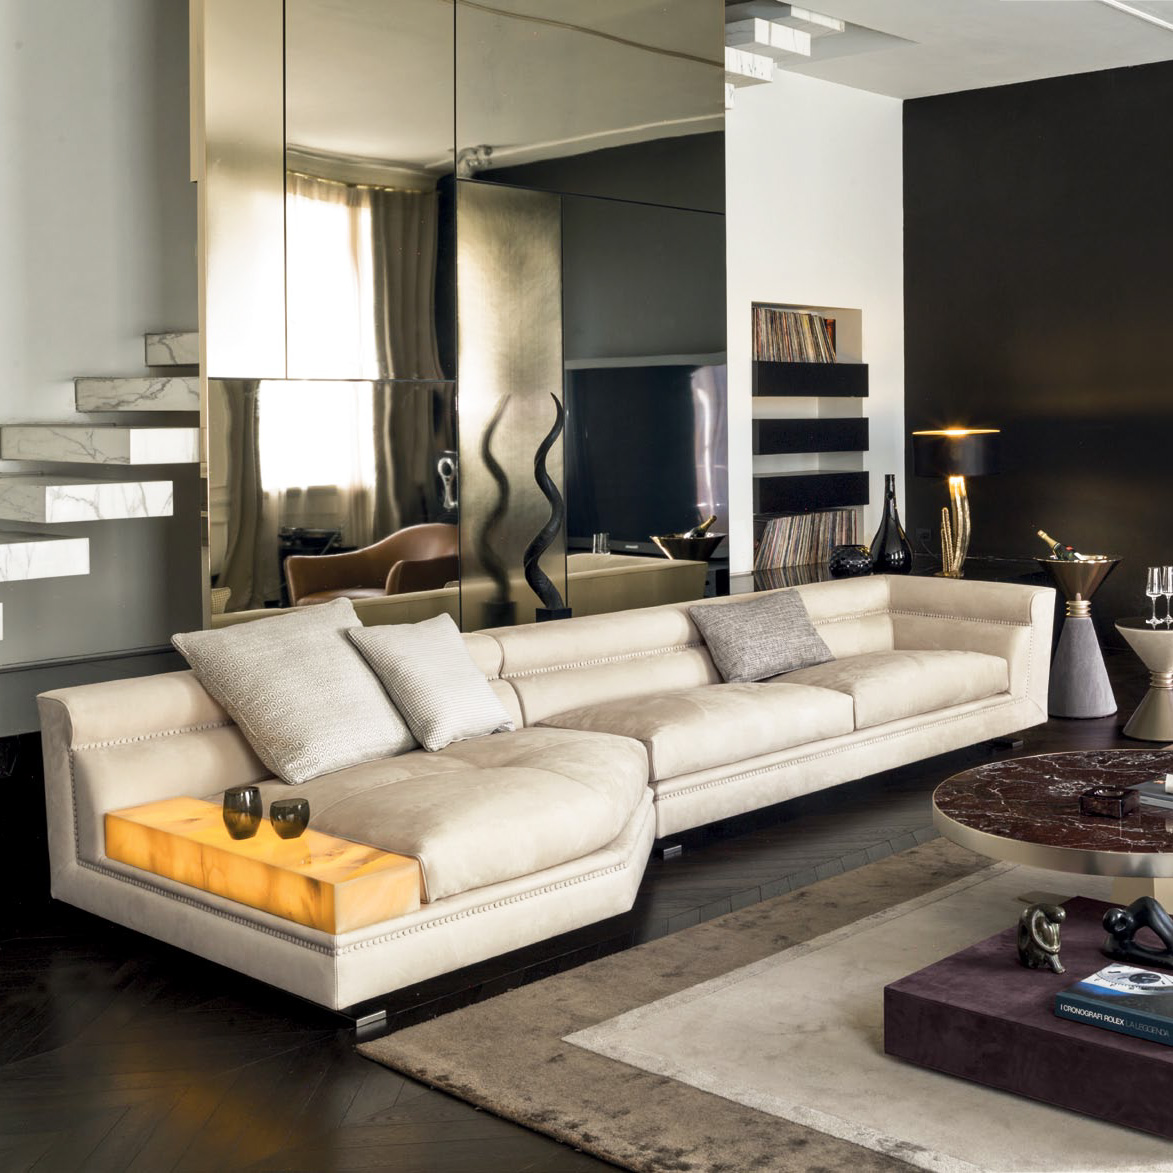 Ansel High End Italian Designer Sectional   Italian Designer U0026 Luxury  Furniture At Cassoni